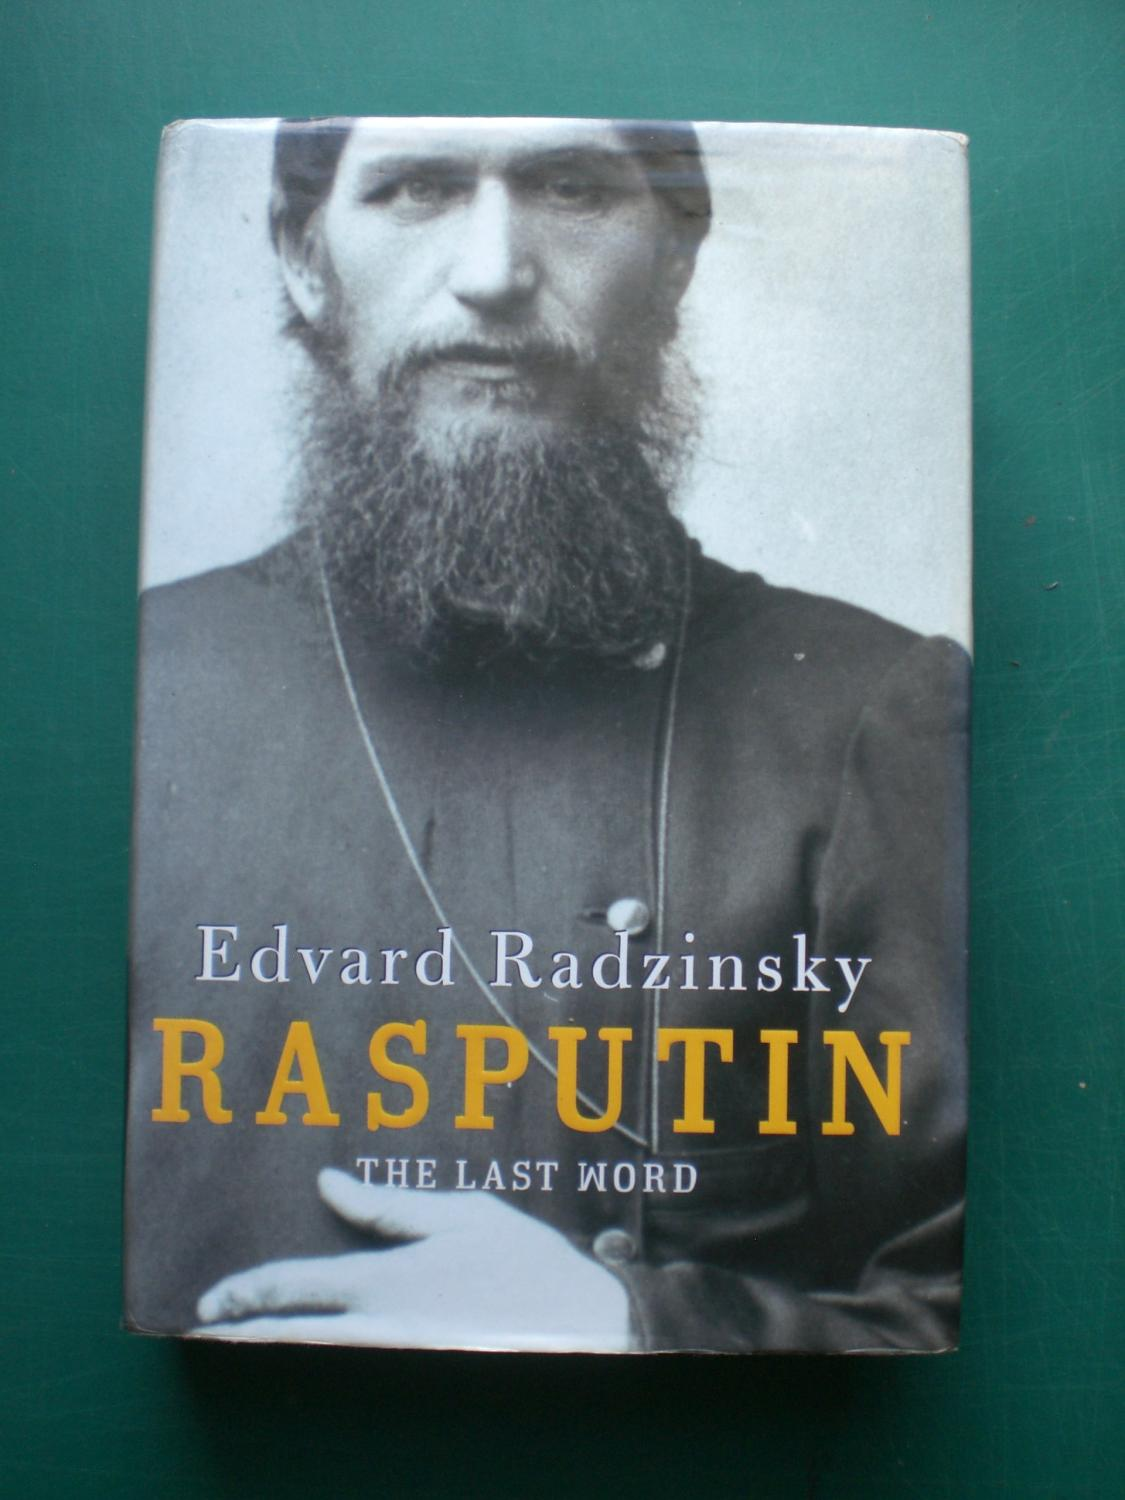 Rasputin The Last Word - Radzinsky, Edvard